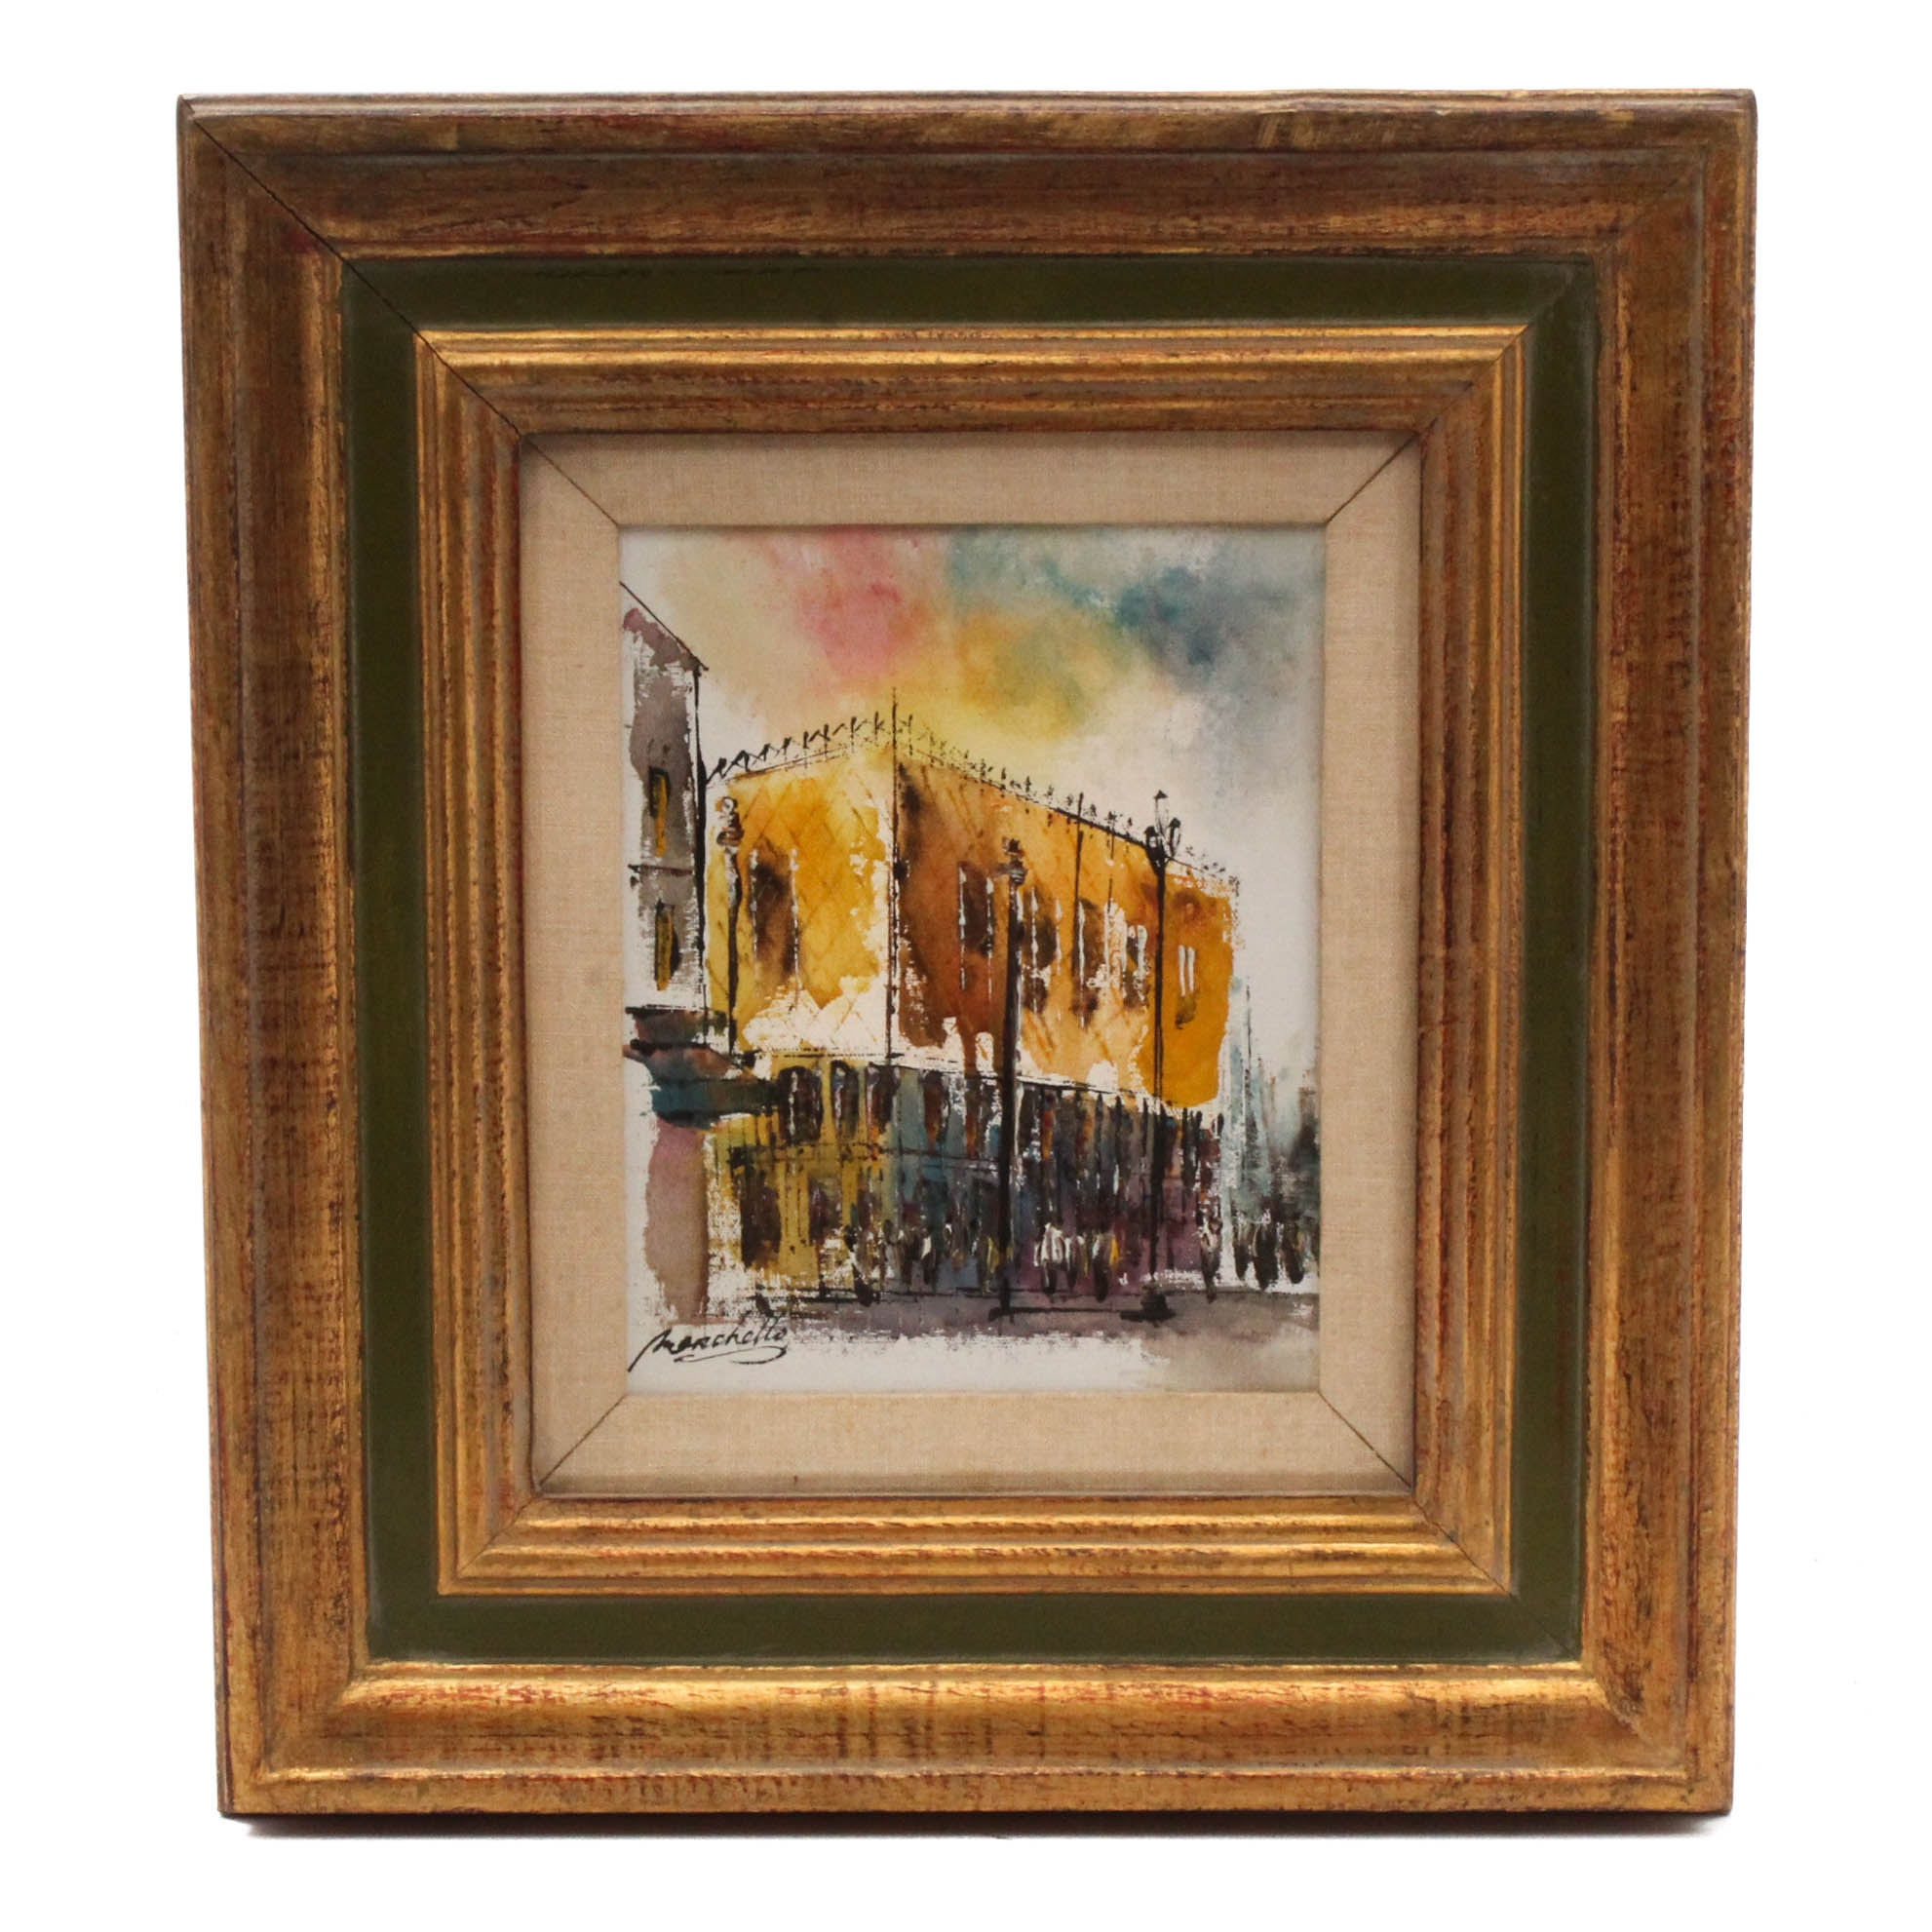 Marchetto Impressionist Oil Painting of Building Facade